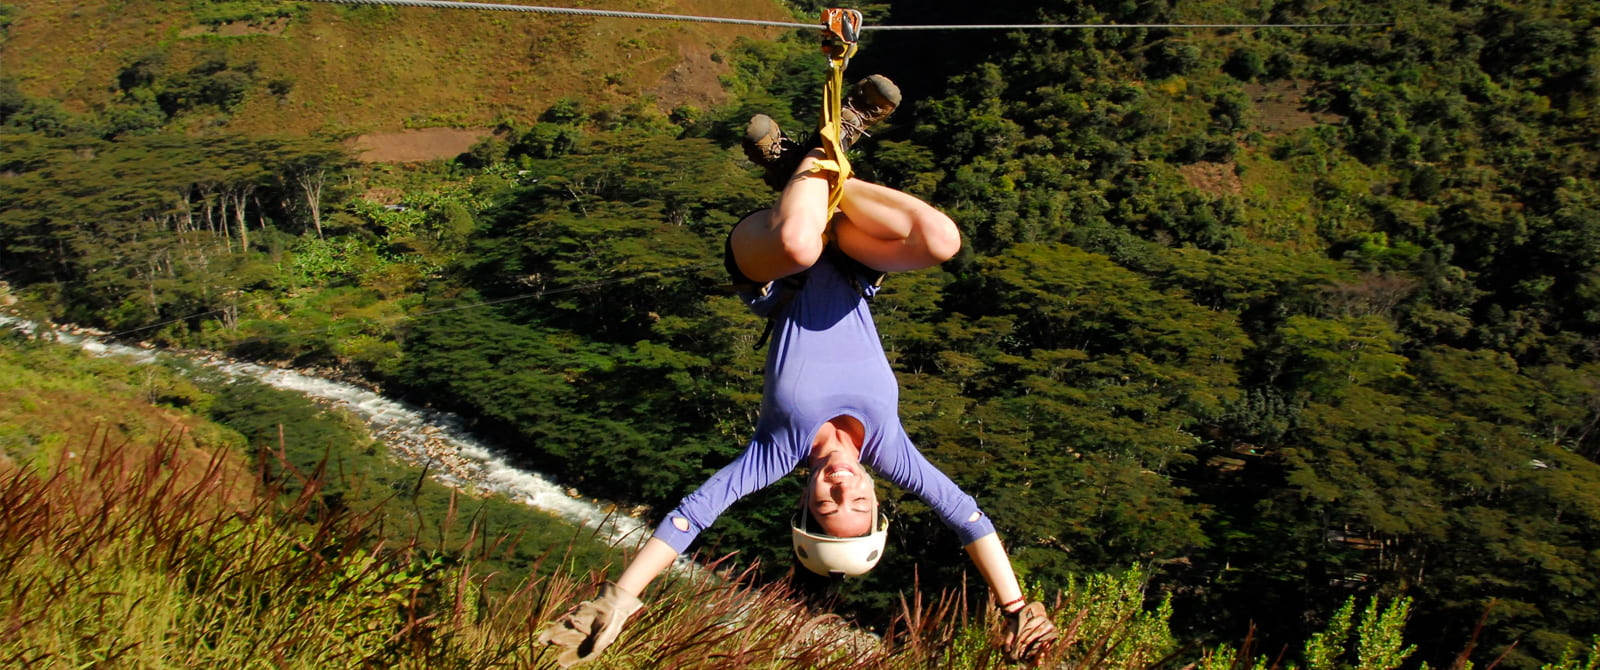 zipline in inka jungle trek